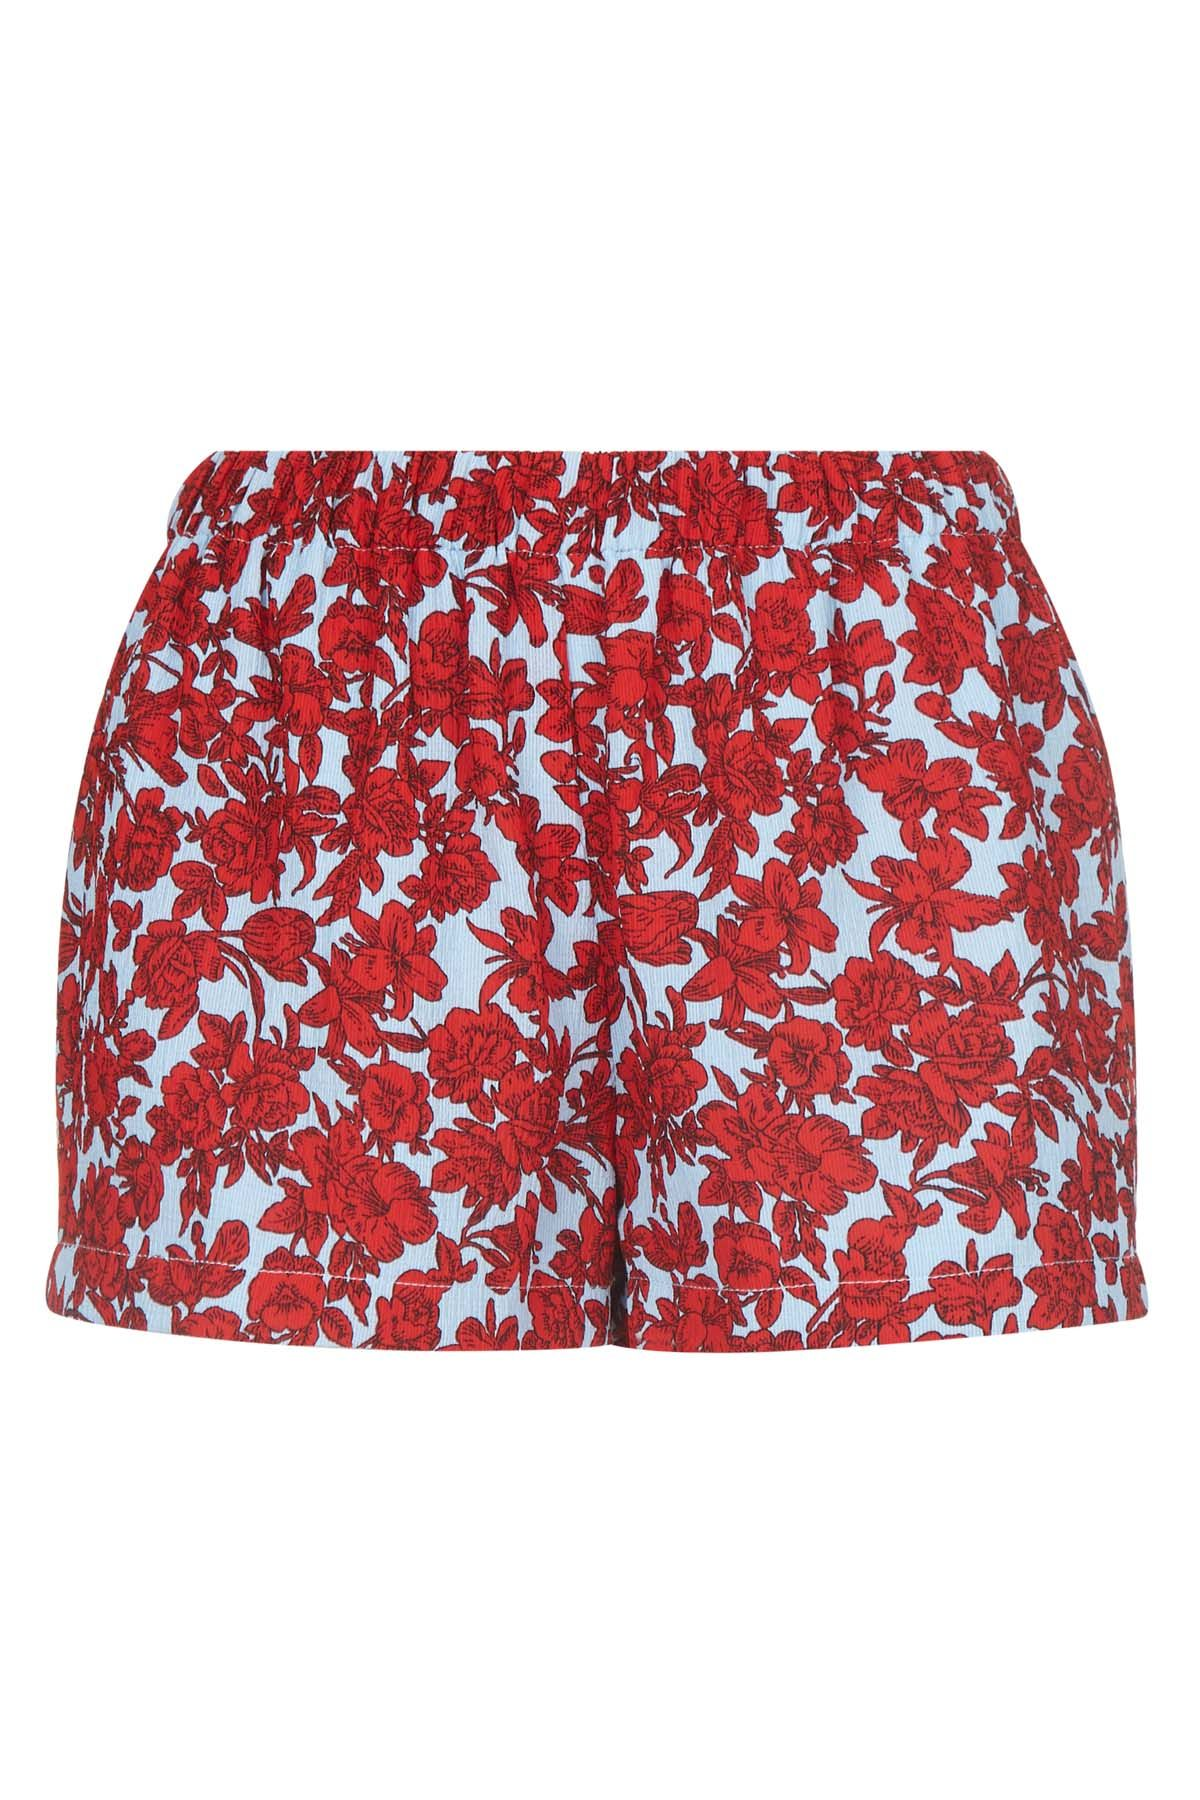 Fools Floral Womens Shorts in Red and Blue